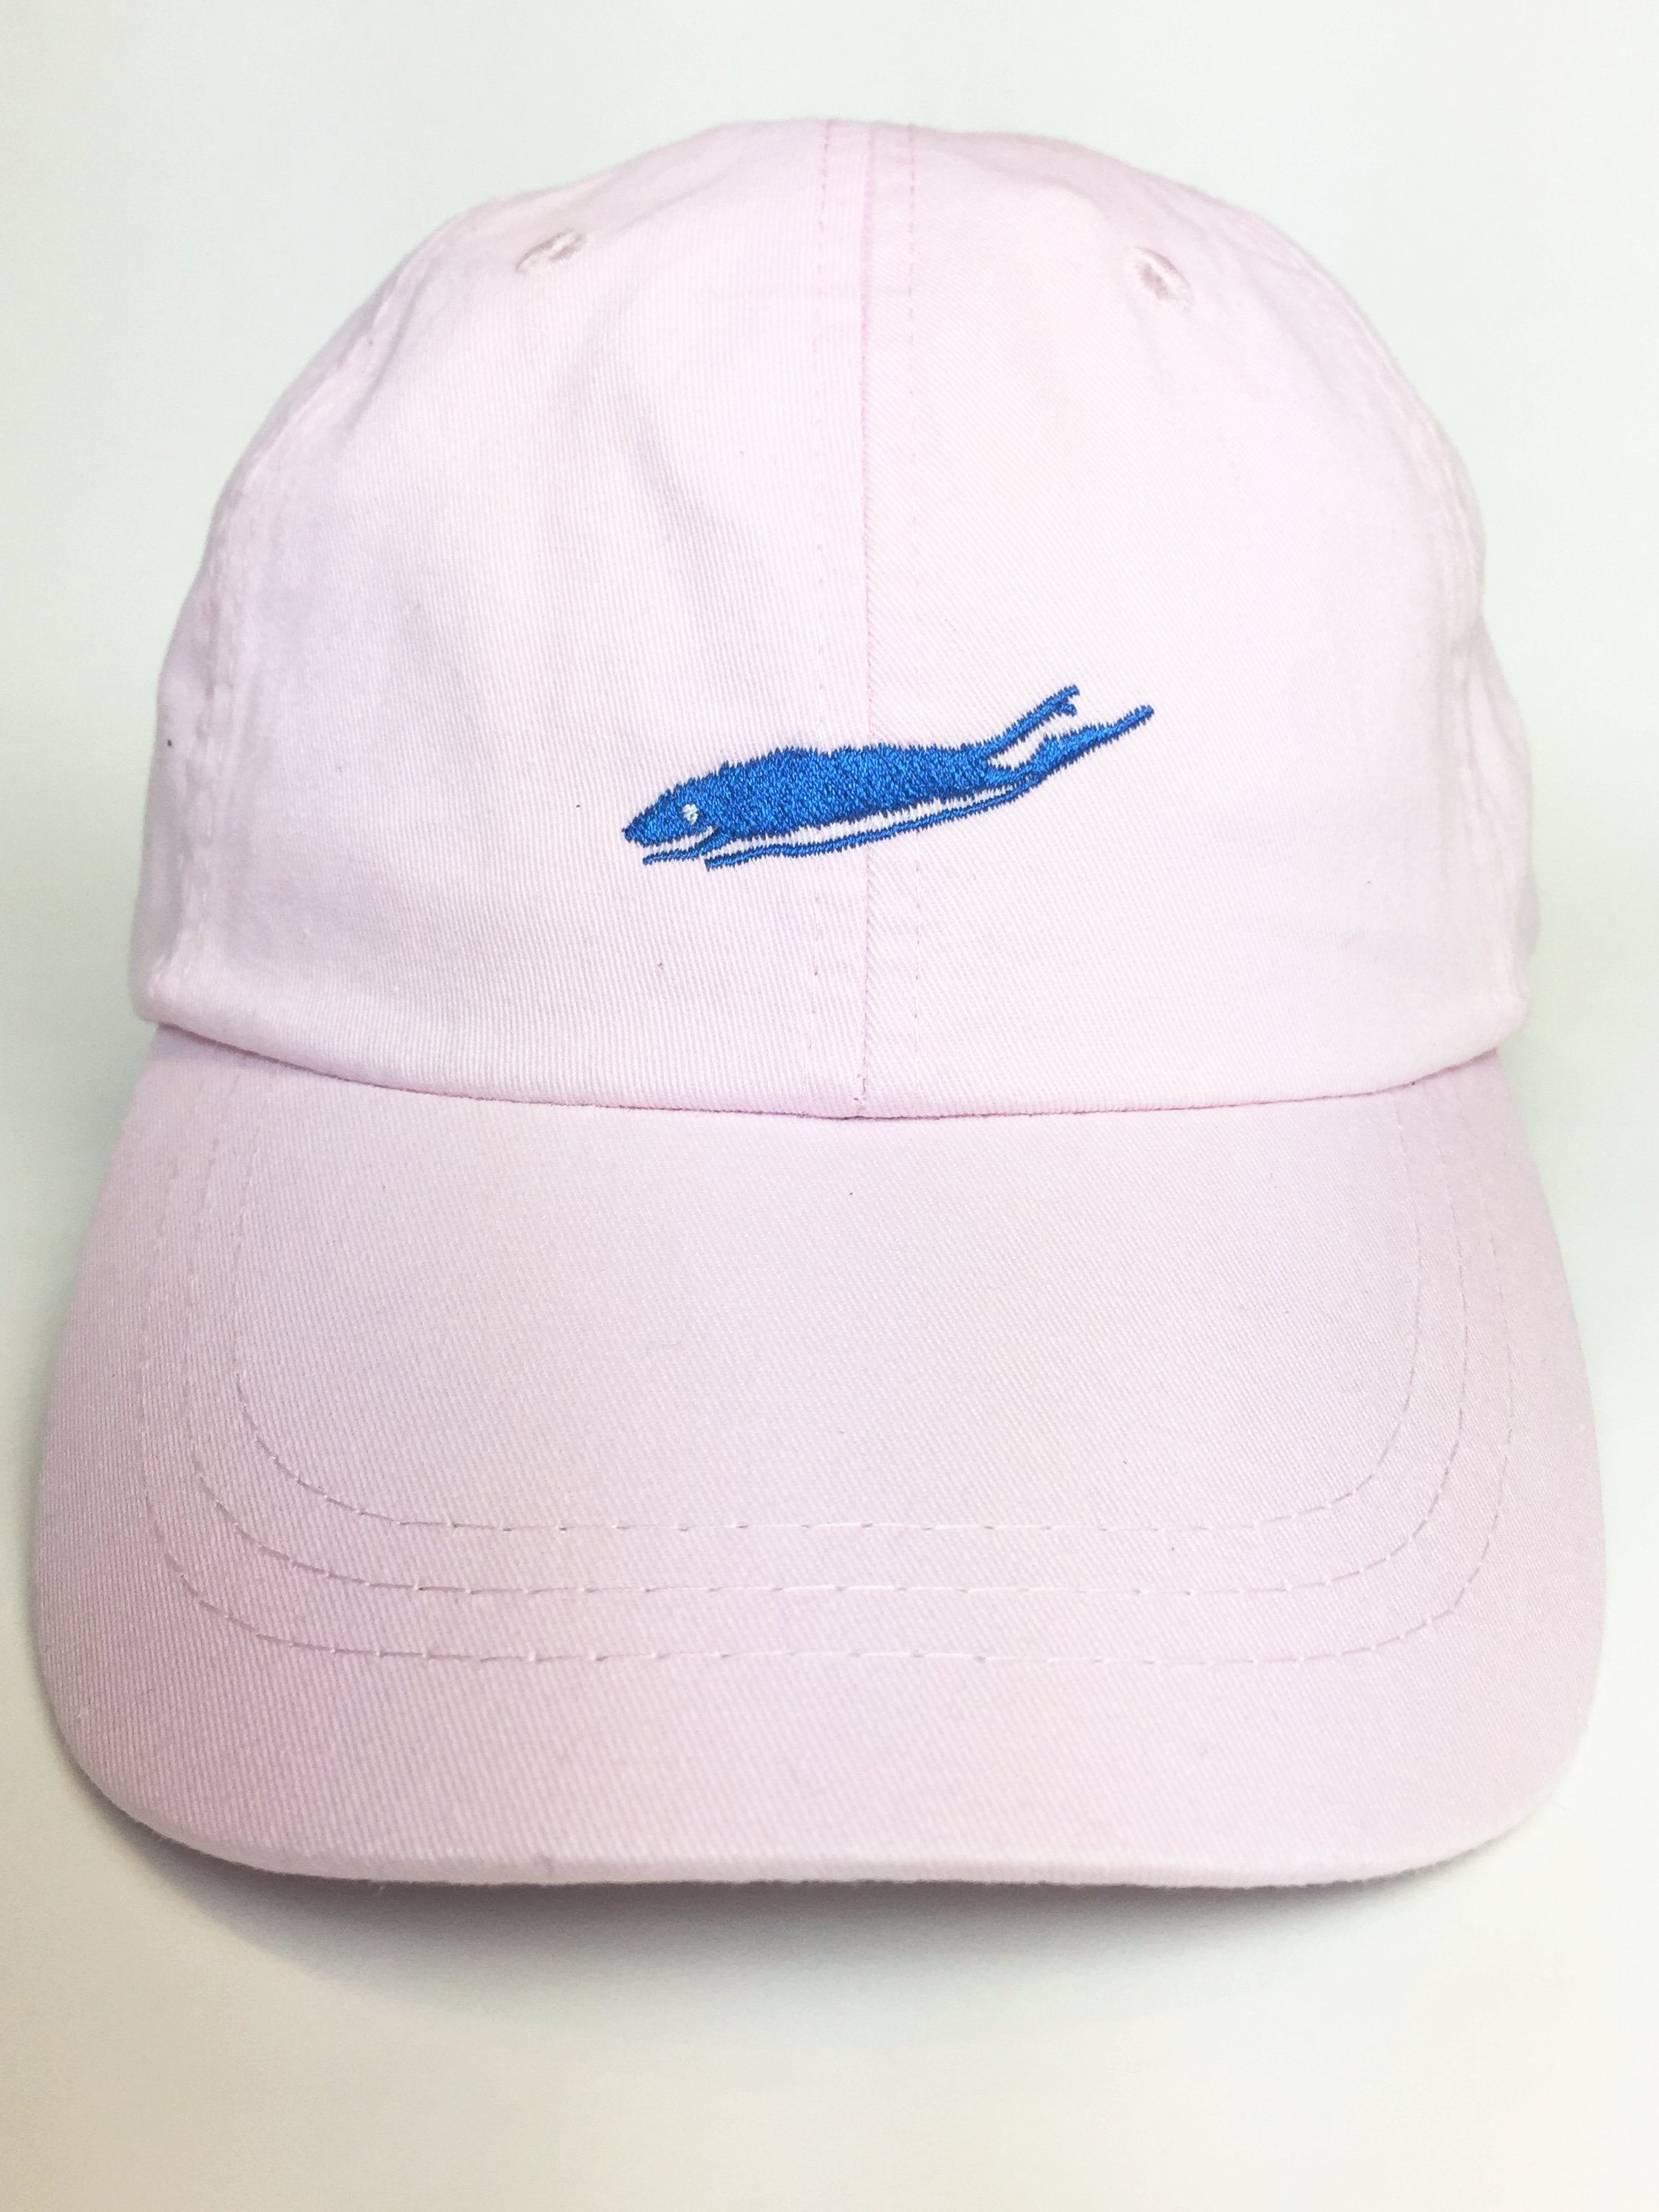 Hats: Classic Cap - Pale Pink - Love The Island